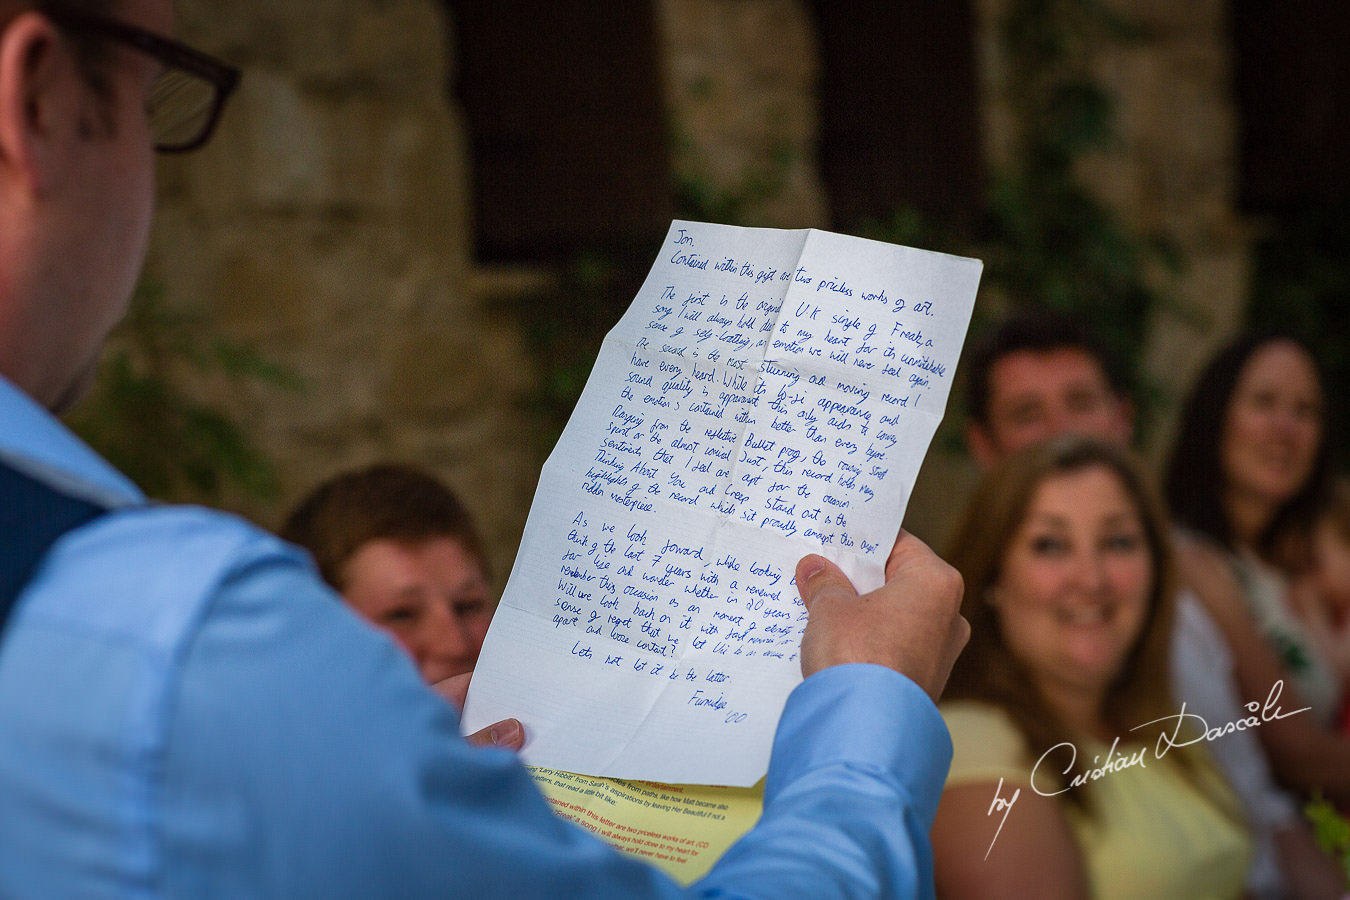 A beautiful wedding day at the Vasilias Nikoklis Inn in Paphos, captured by Cristian Dascalu. Speeches Moments.